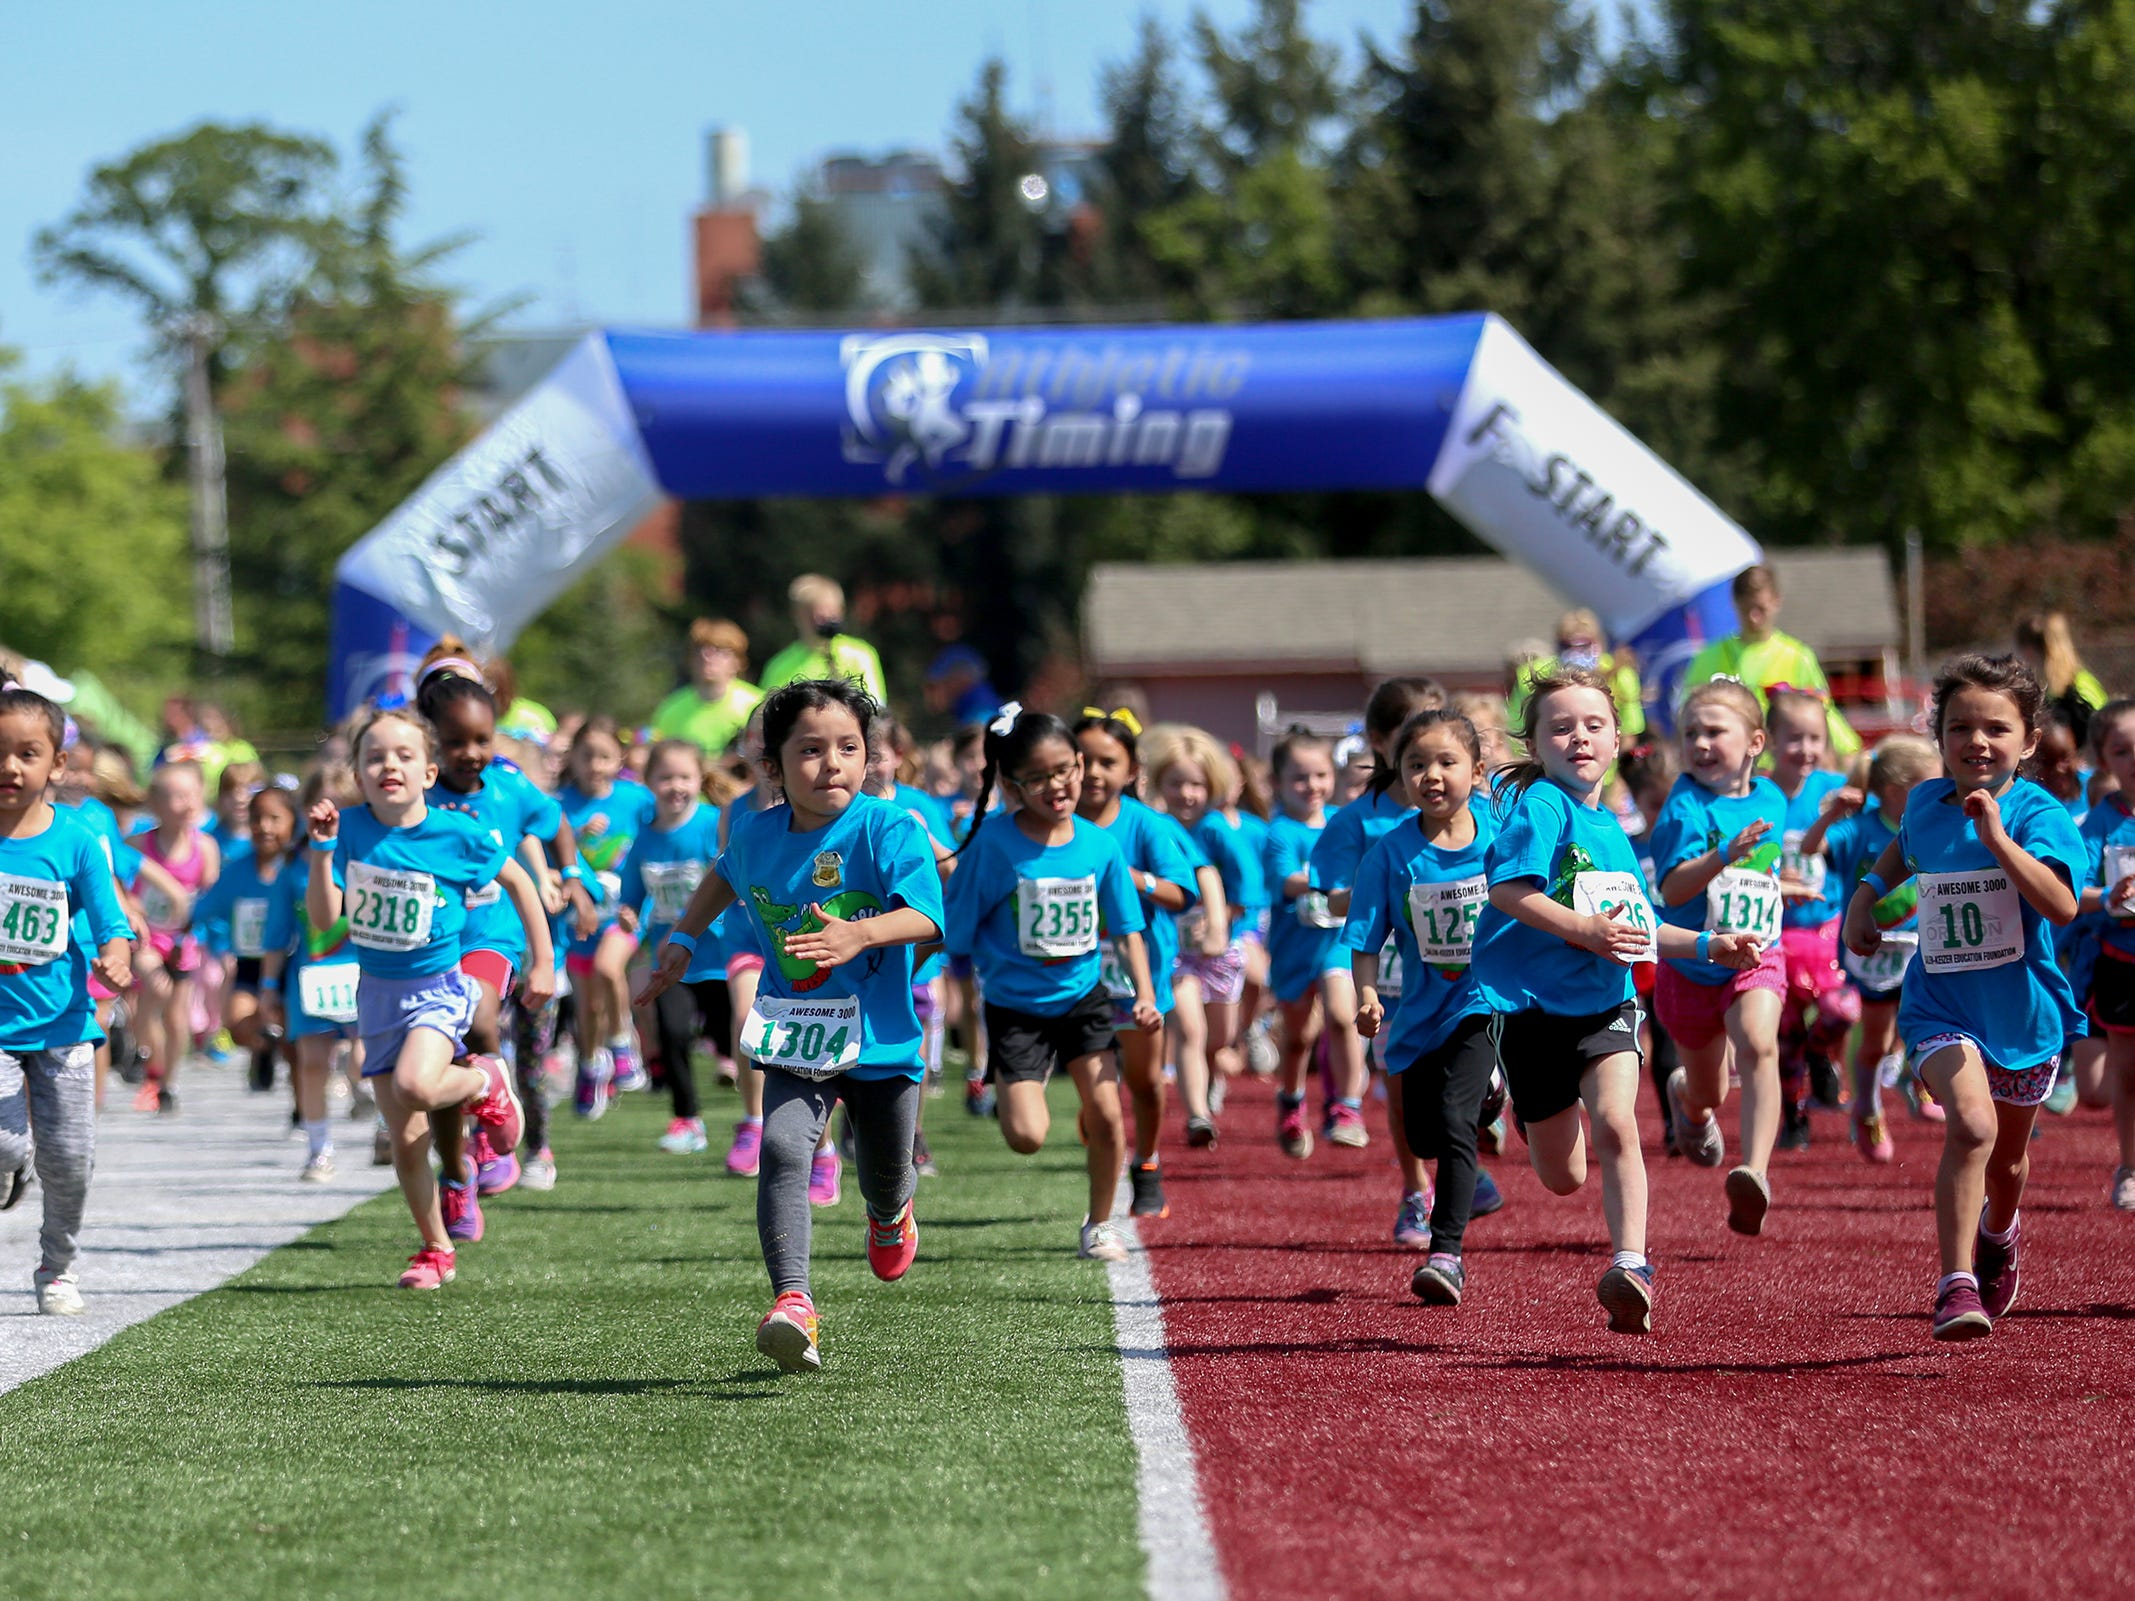 PHOTOS: Salem kids turn out for Awesome 3000